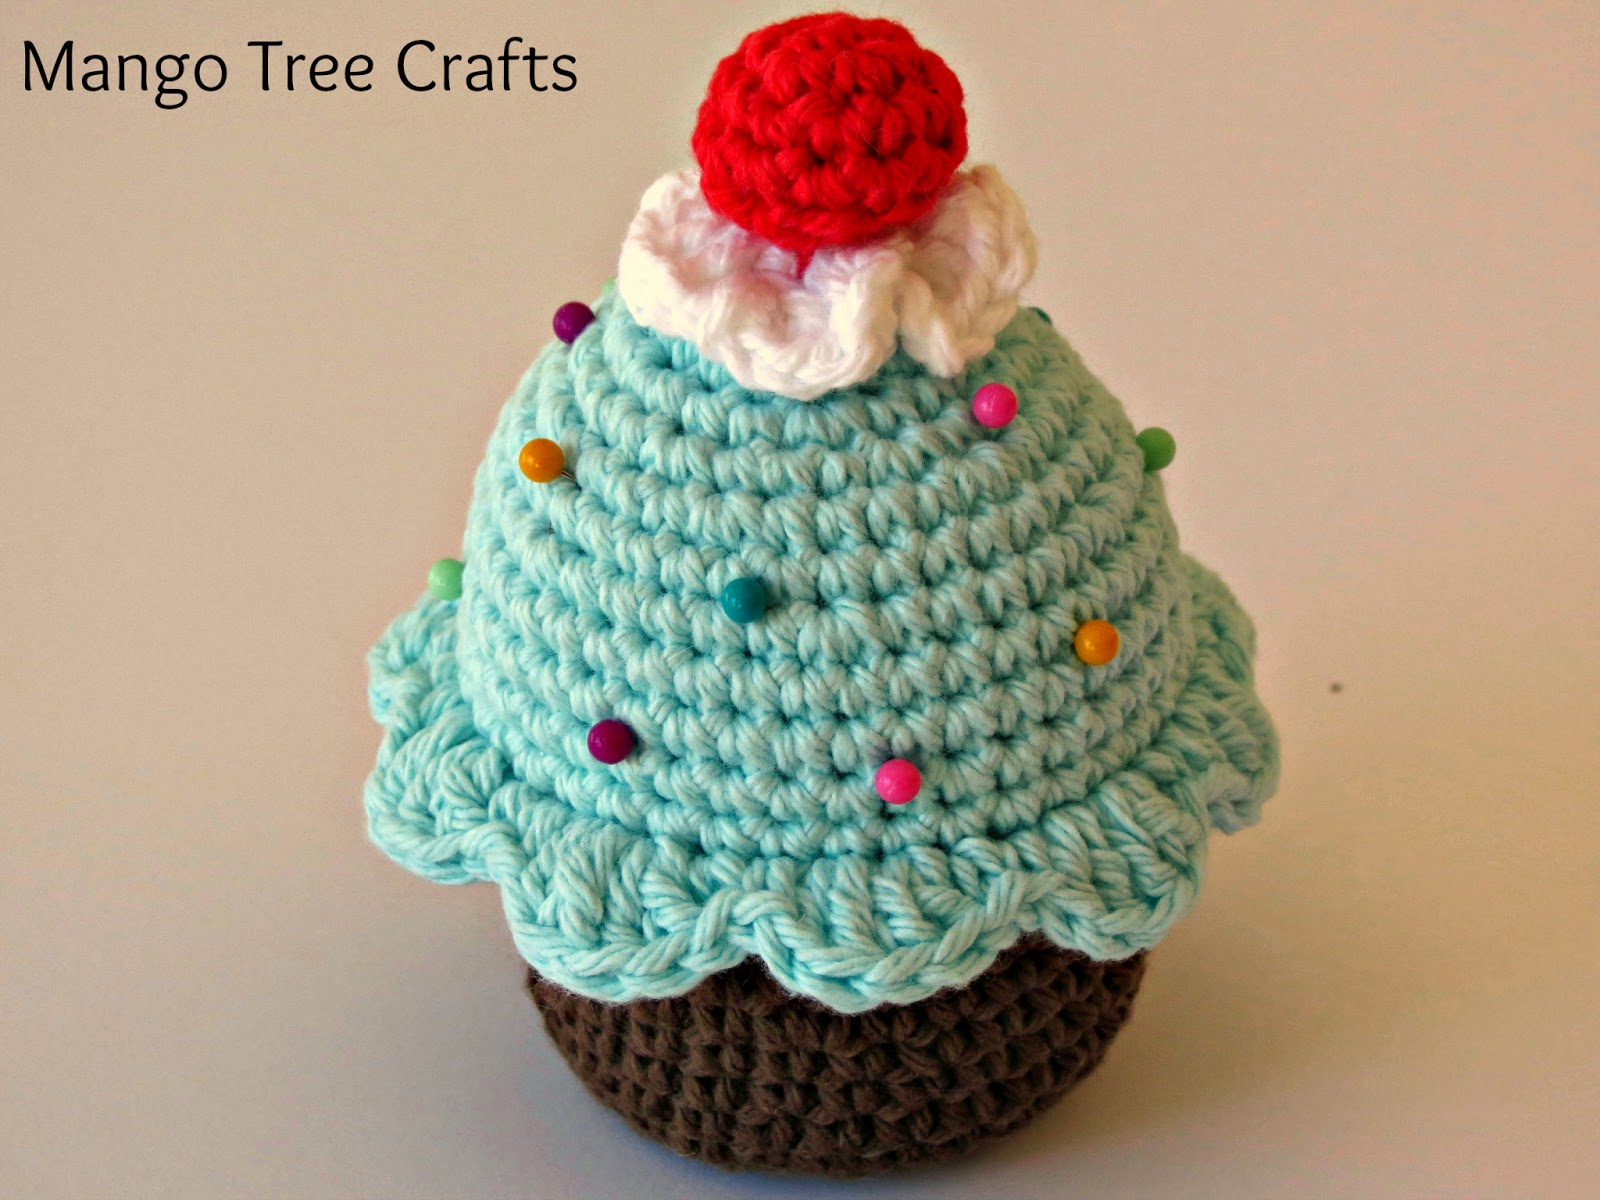 Crochet Pattern Free Cupcake : Mango Tree Crafts: Crochet Cupcake Pin Cushion